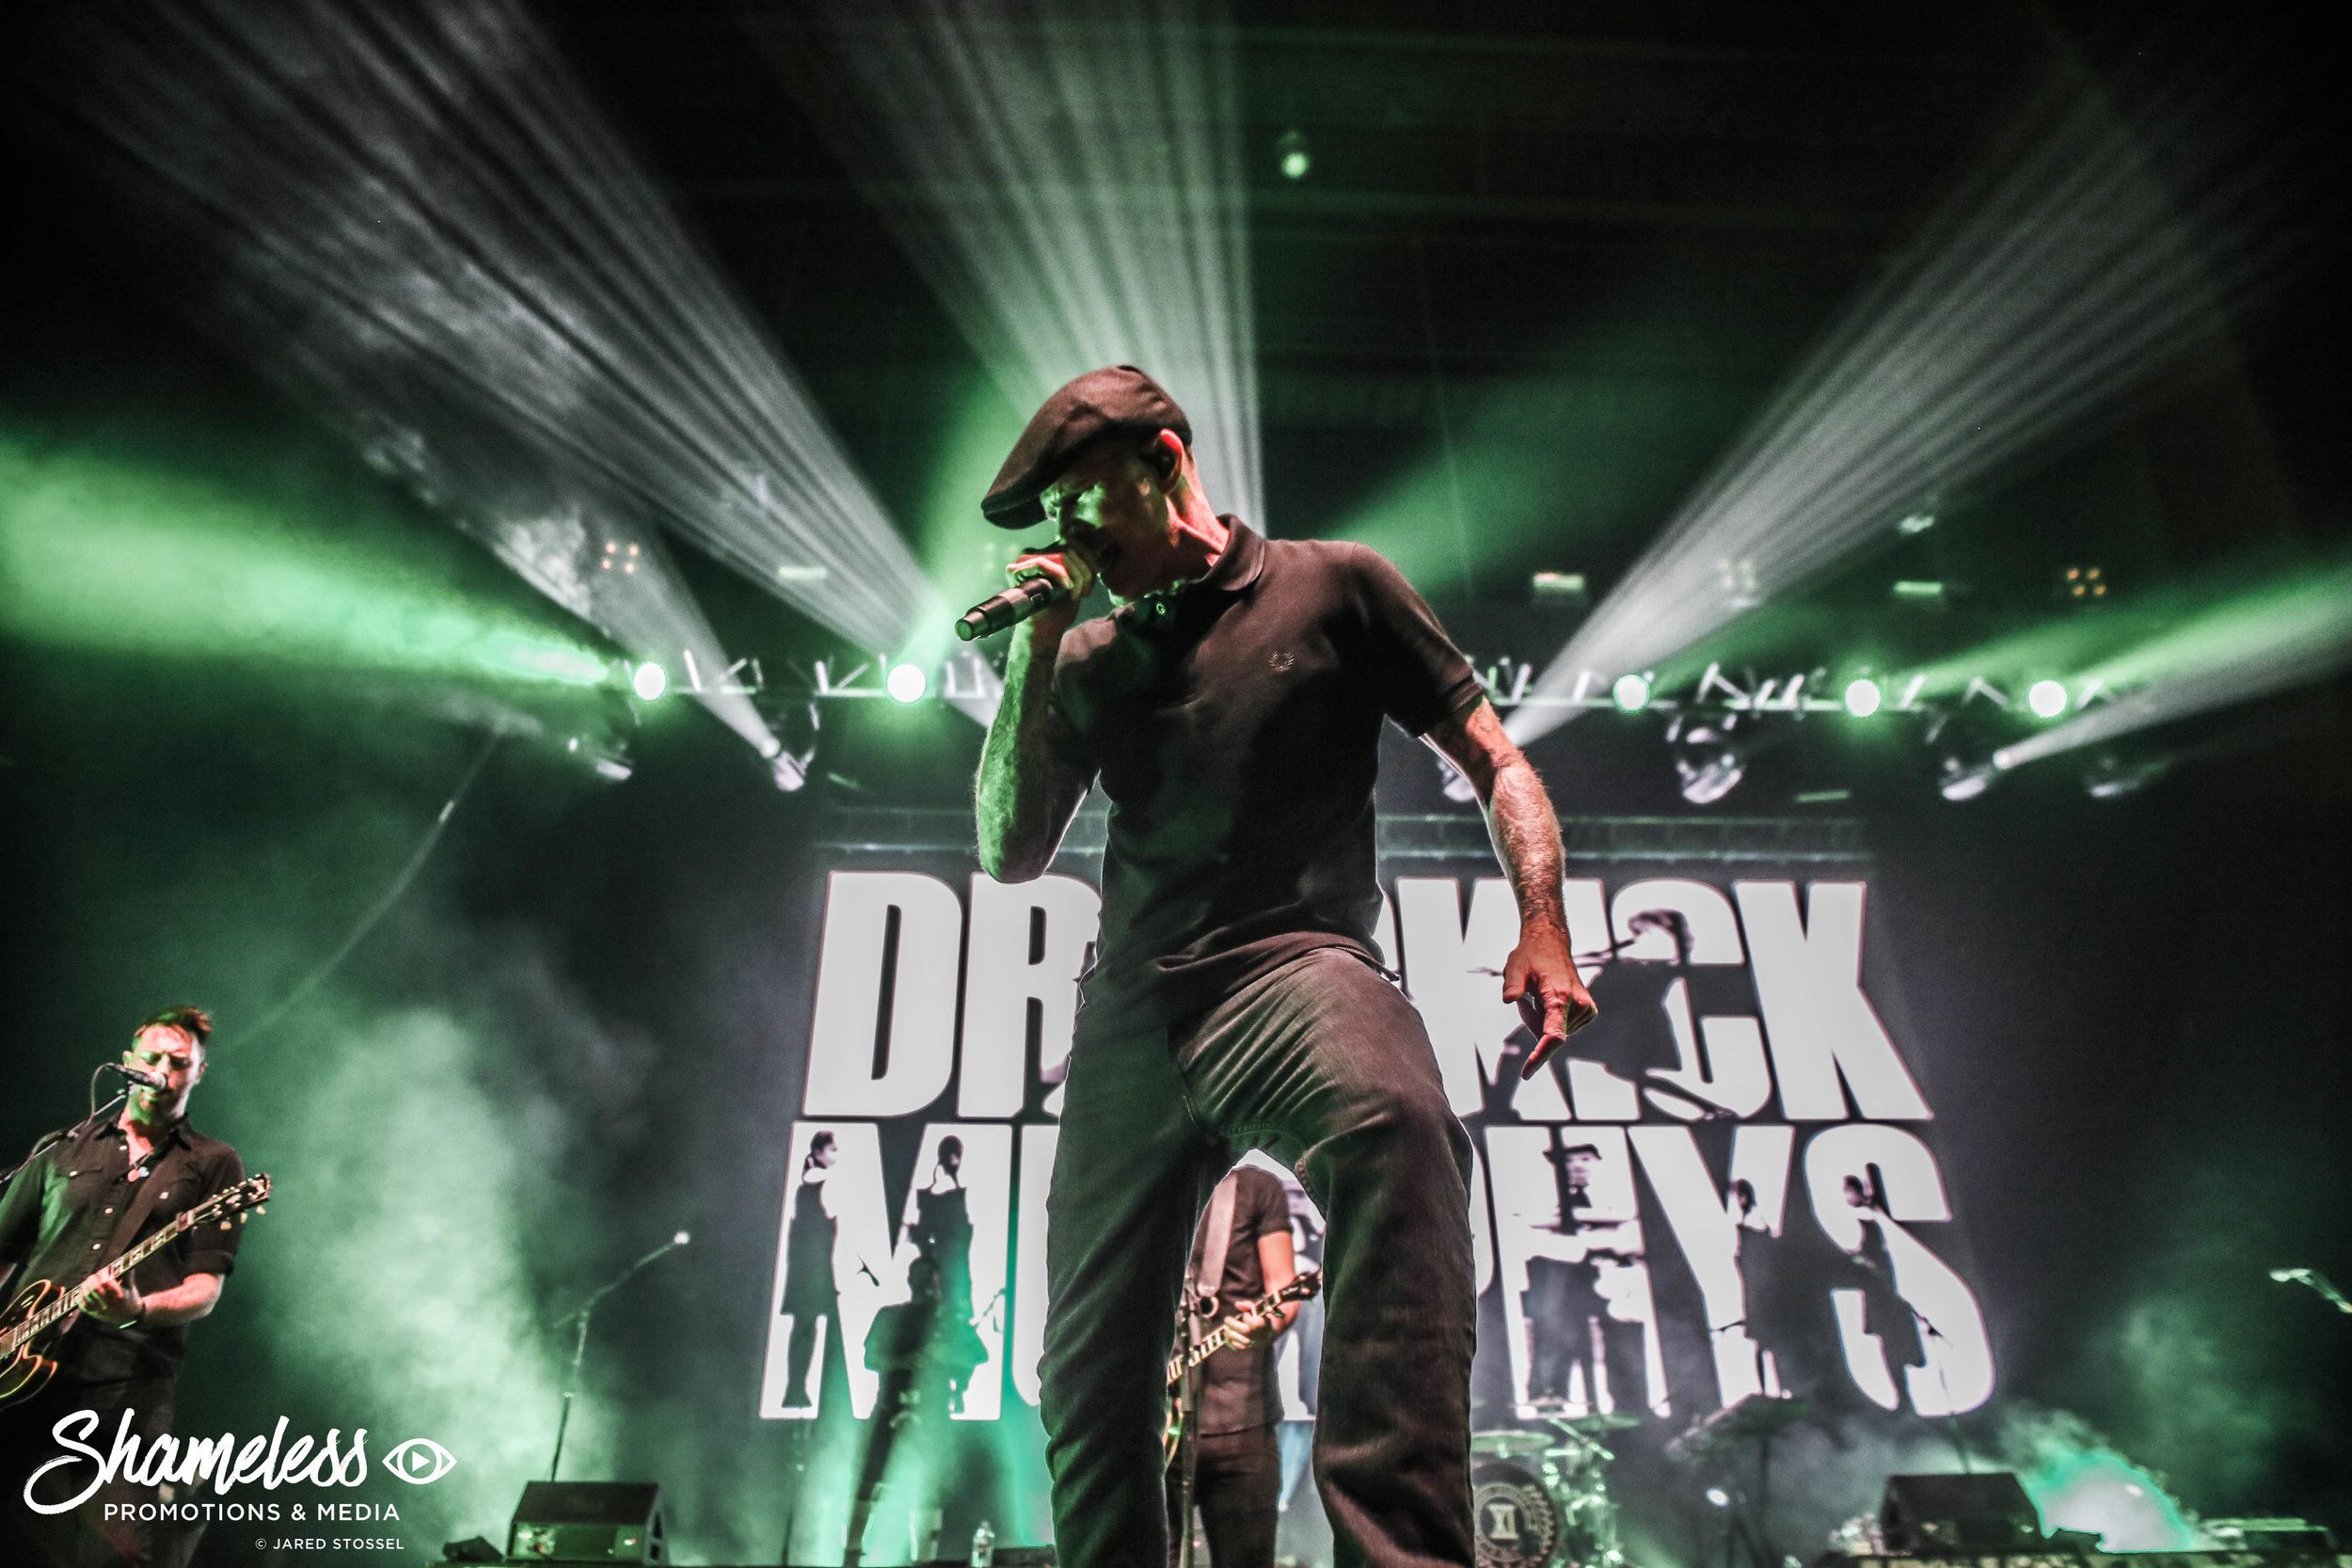 Dropkick Murphys performing at Bill Graham Civic Auditorium in San Francisco, CA. September 27, 2018. Photo Credit: Jared Stossel